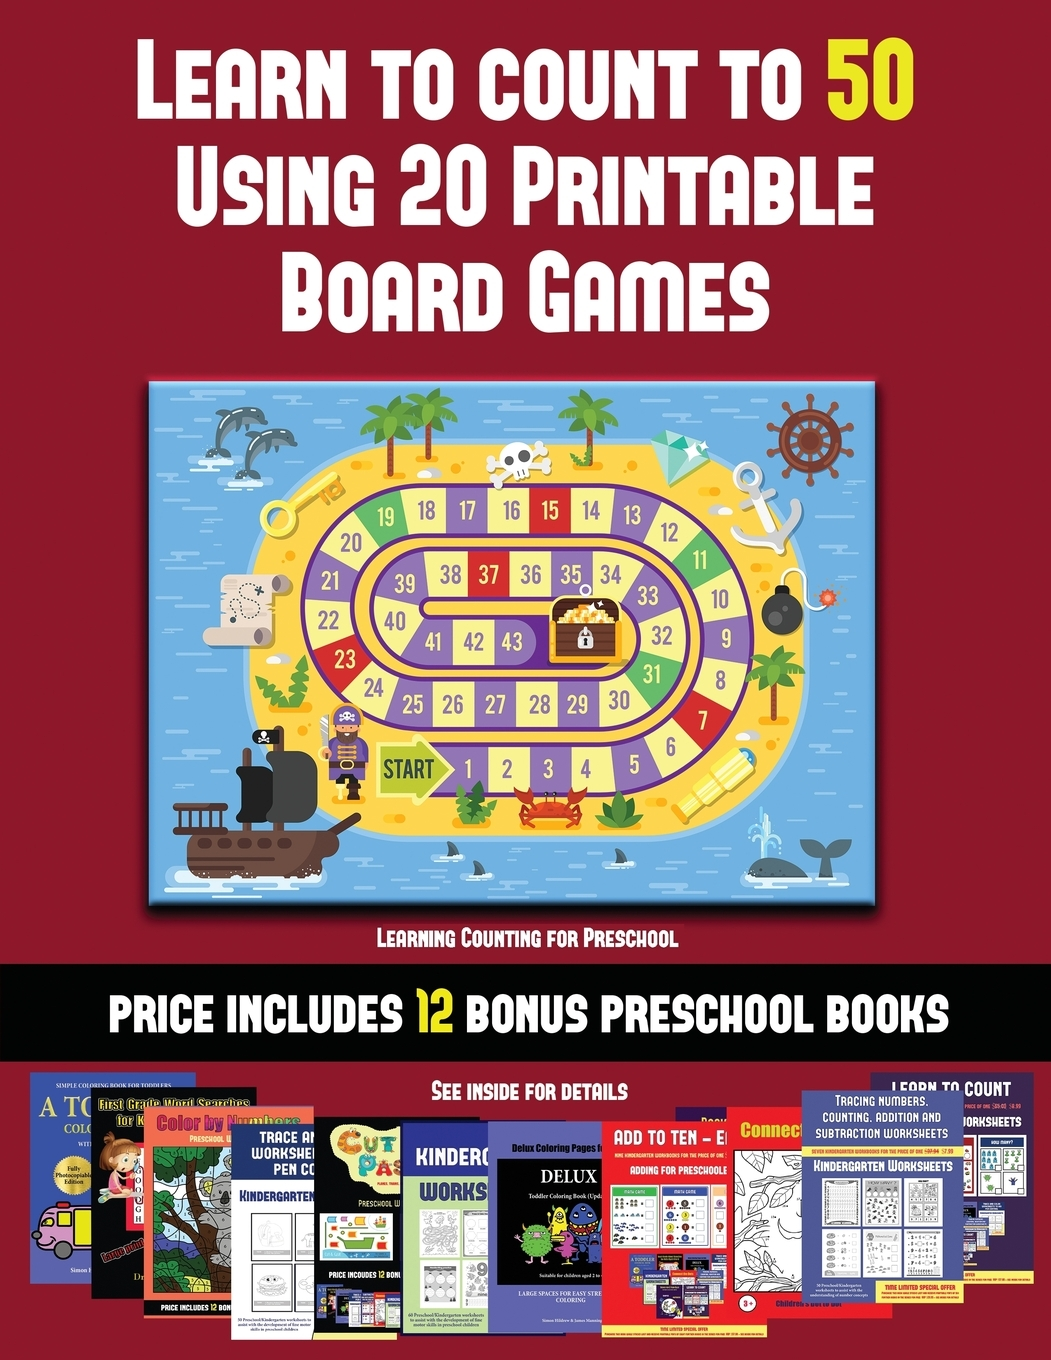 Learning Counting For Preschool Learning Counting For